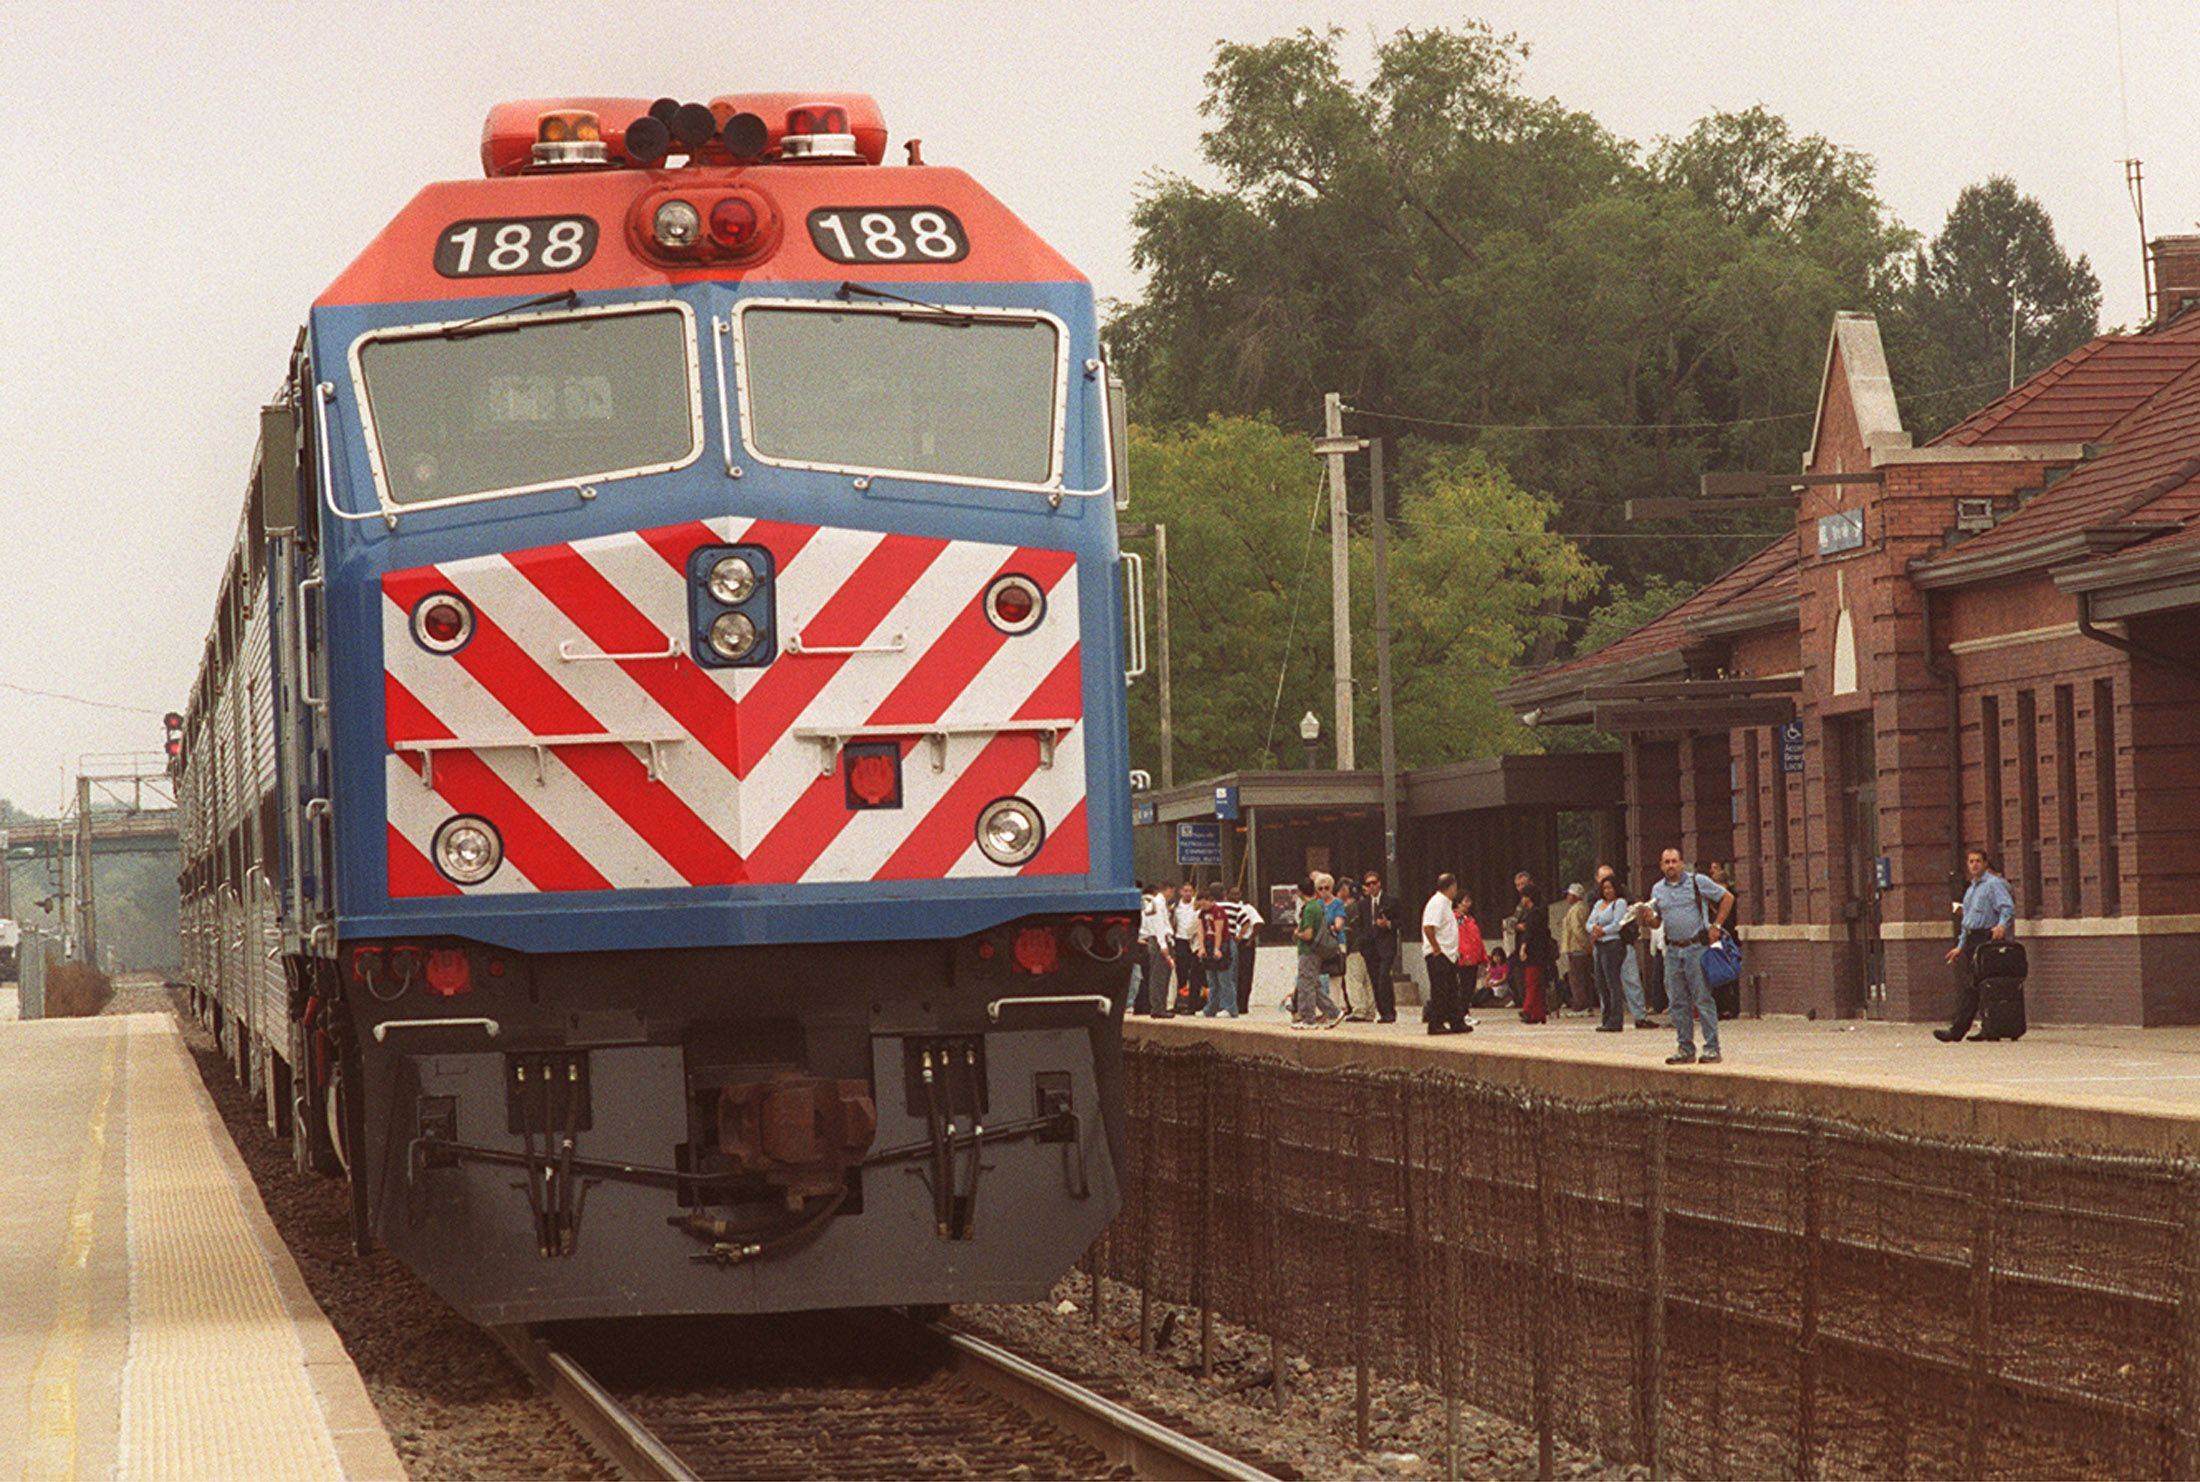 Metra, Pace and the CTA are losing revenues because of sales tax havens downstate, the RTA claims.